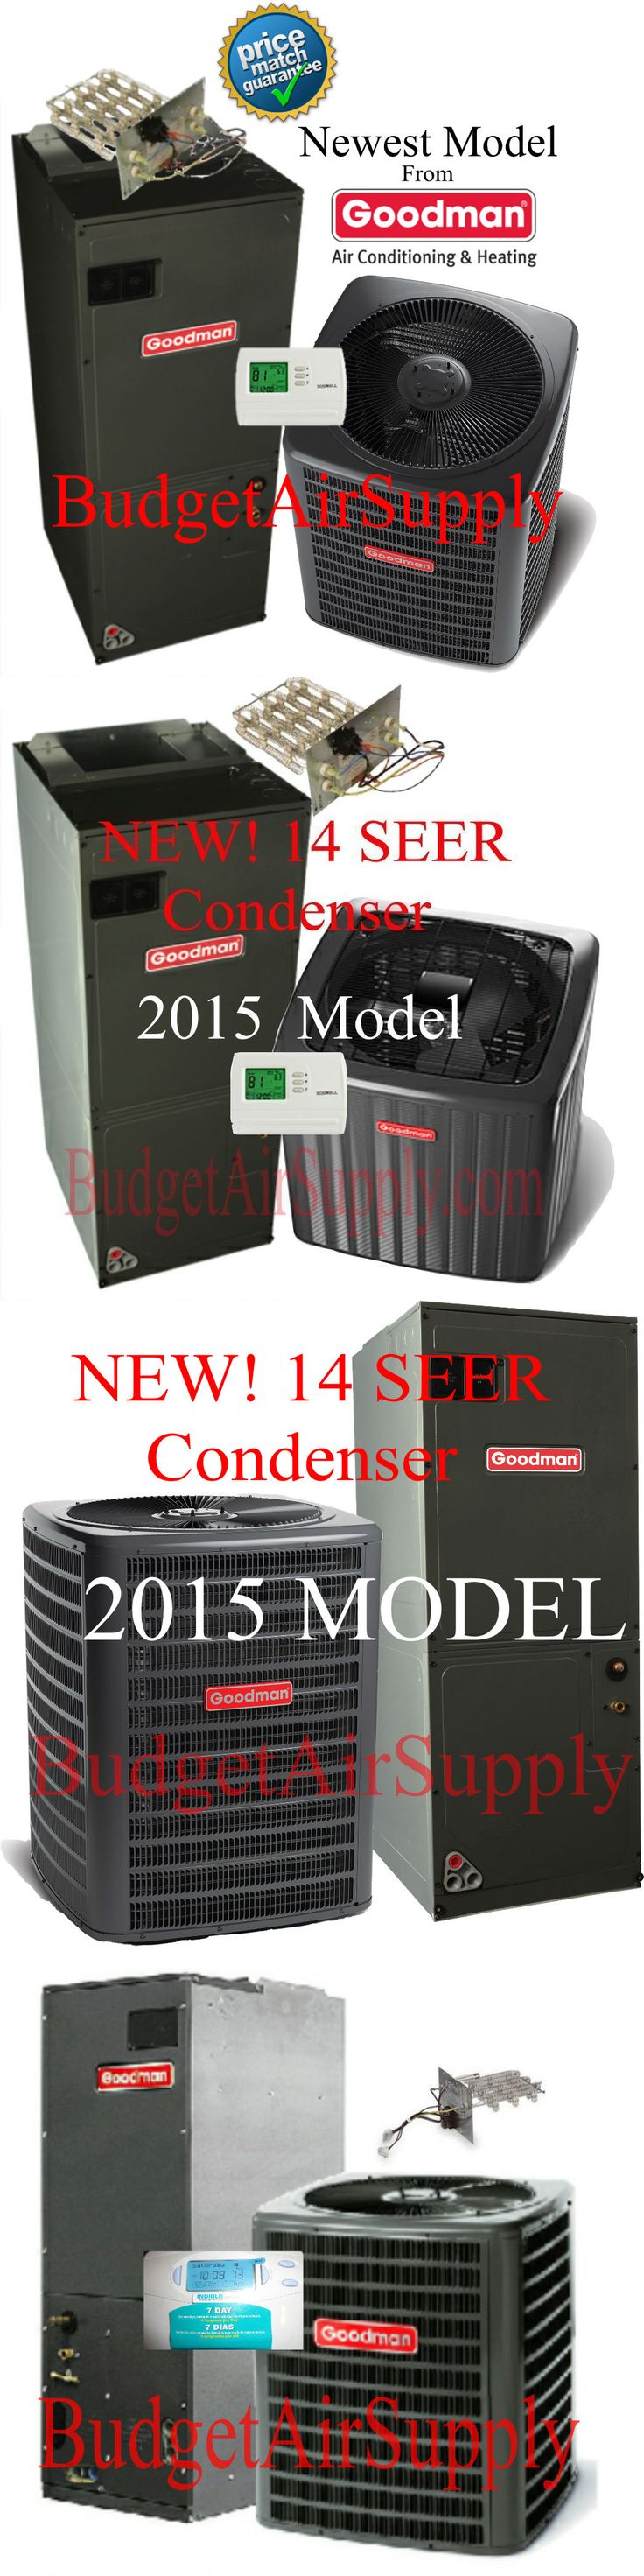 Air Conditioners 69202: Goodman 2.5 Ton 14 Seer R410a Multi-Speed Complete Split System Heat Pump -> BUY IT NOW ONLY: $1710 on eBay!